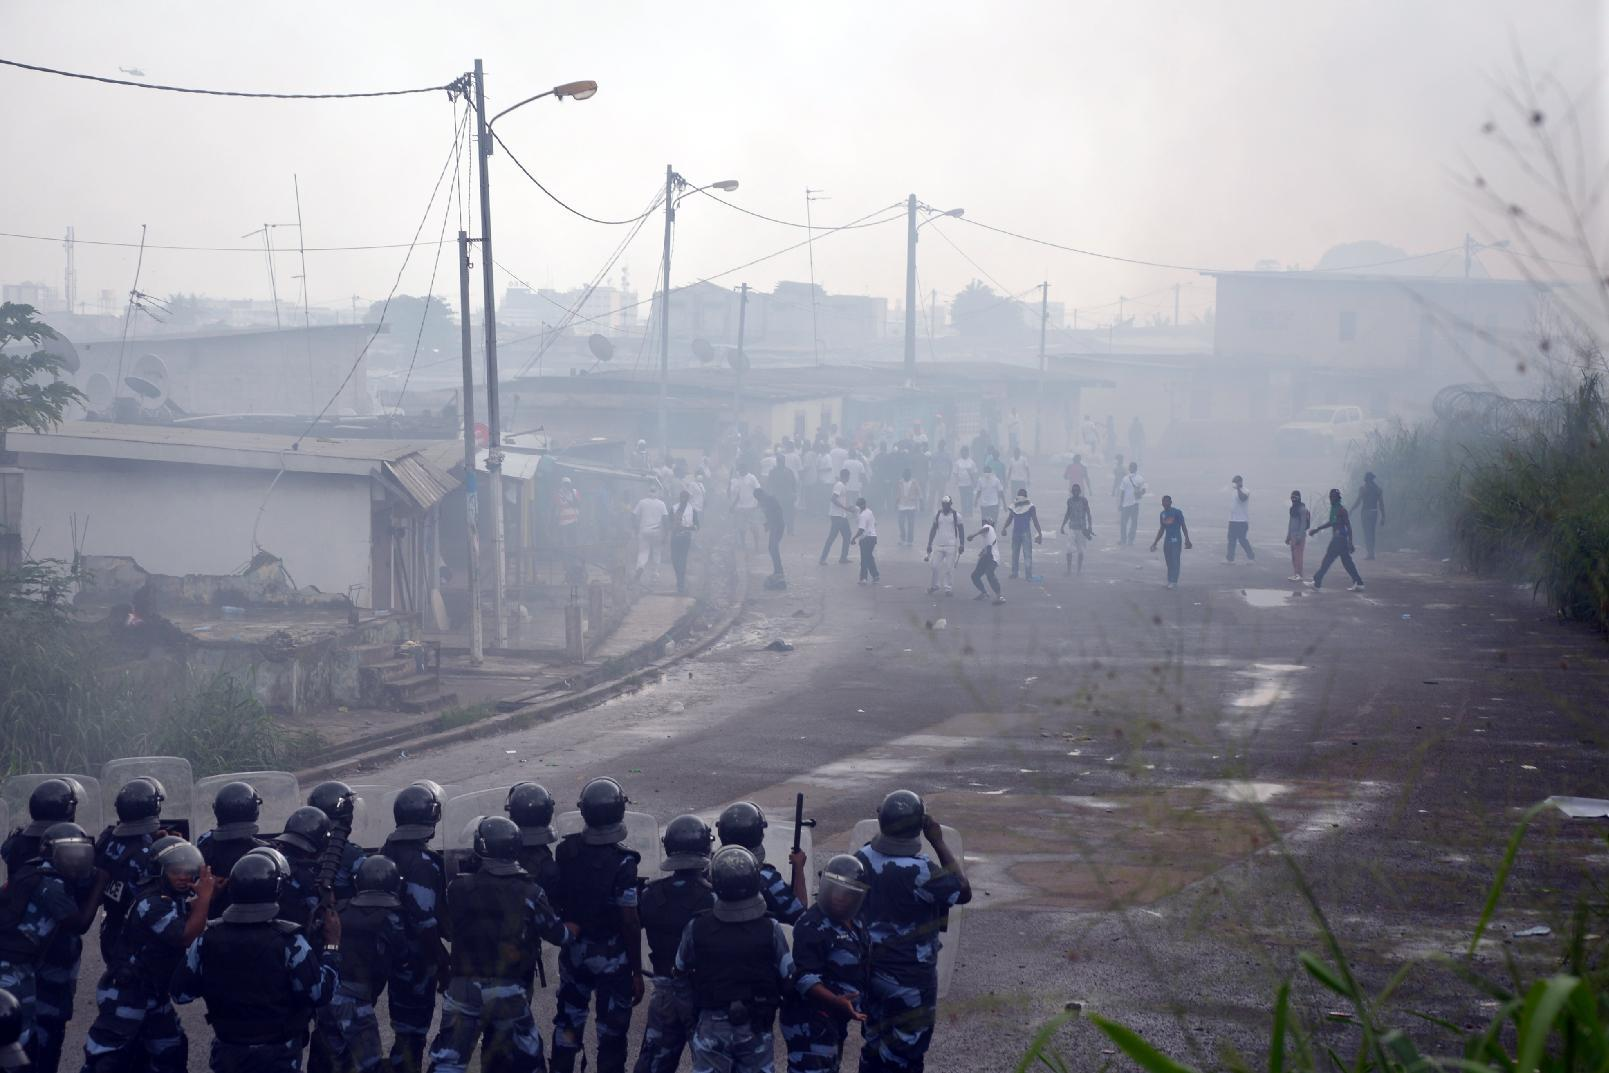 Gabon opposition figures summoned over deadly demonstration